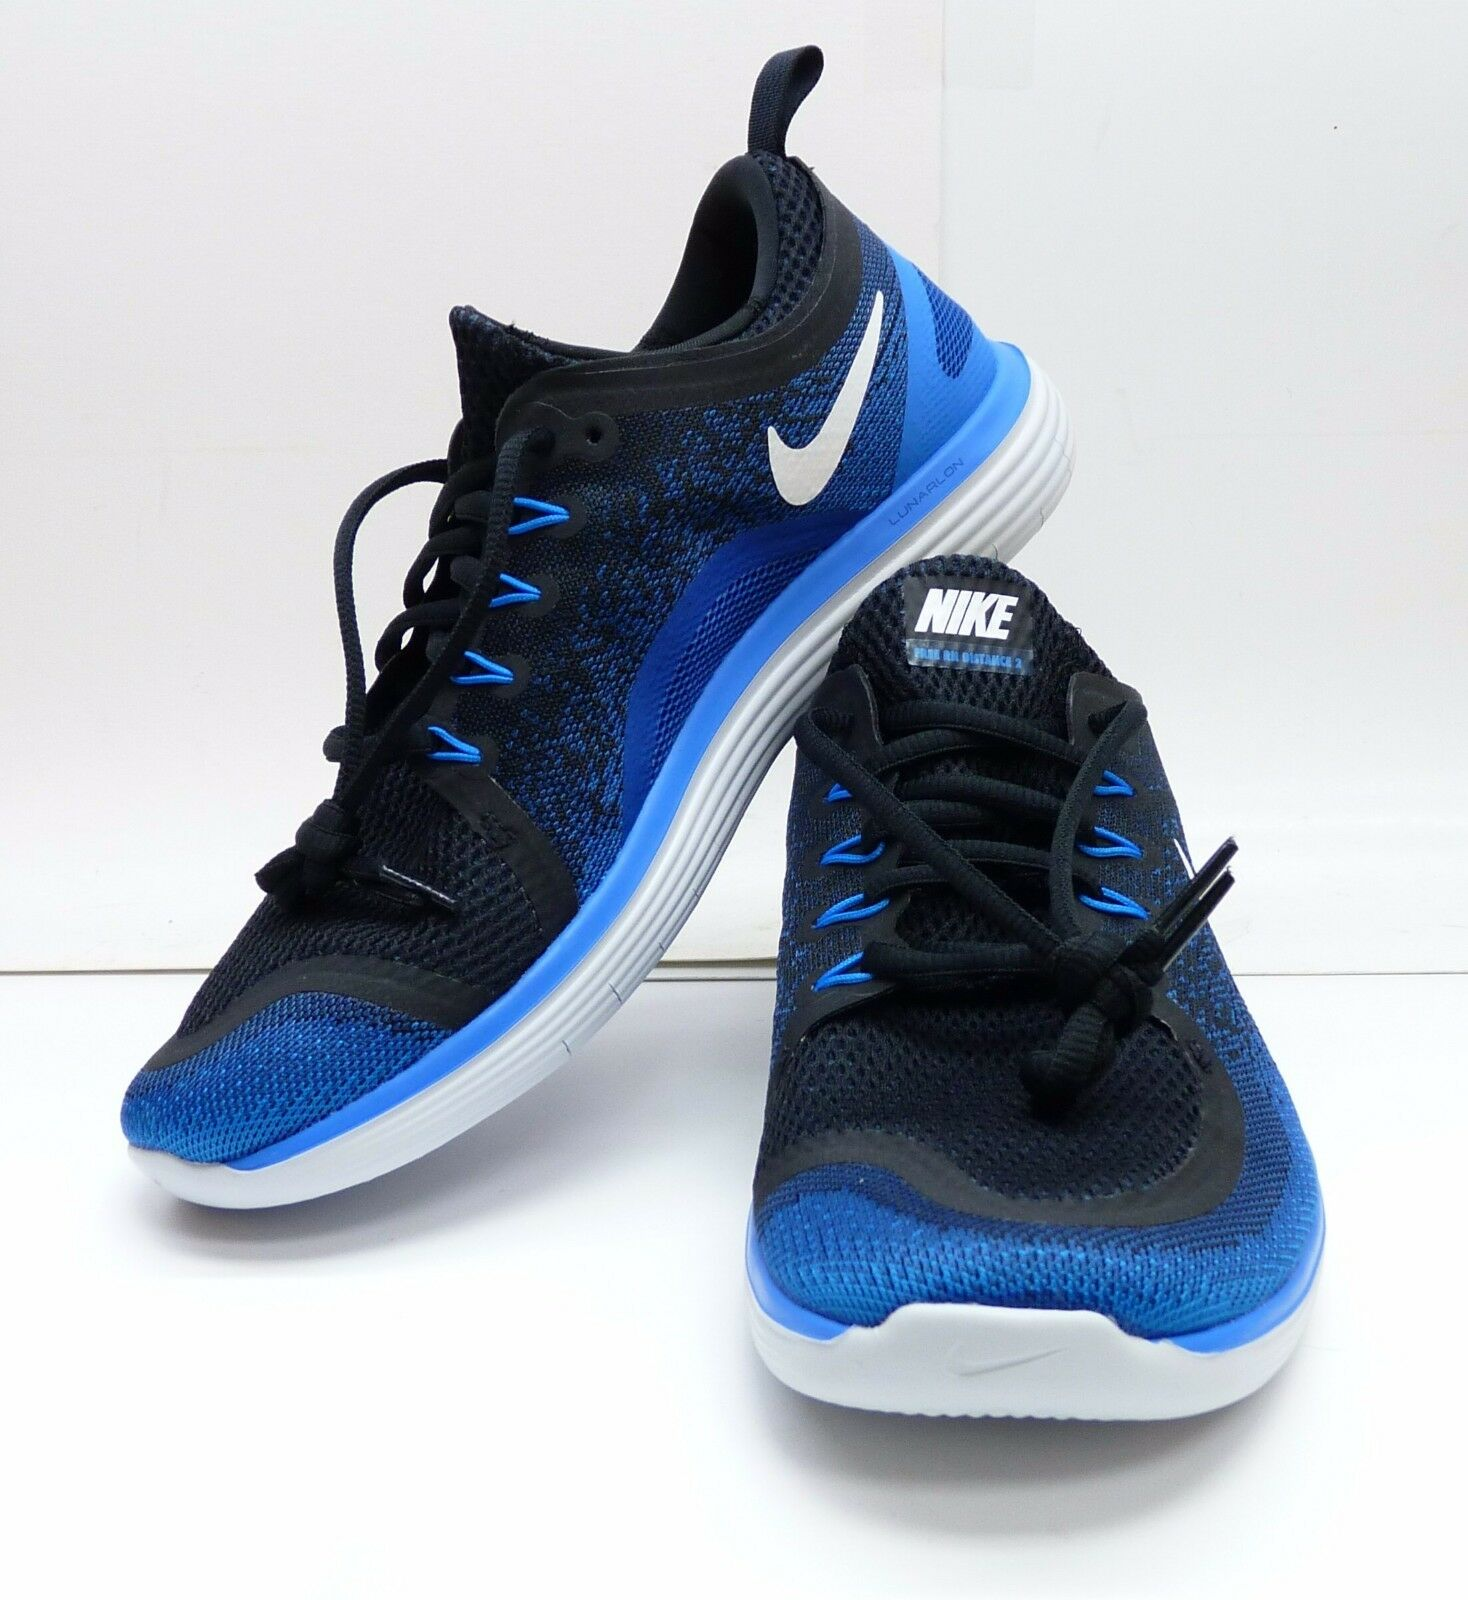 NIKE Free RN Distance 2 Men's Running Shoes 863775-401 Size 8.5US  FREE SHIPPING